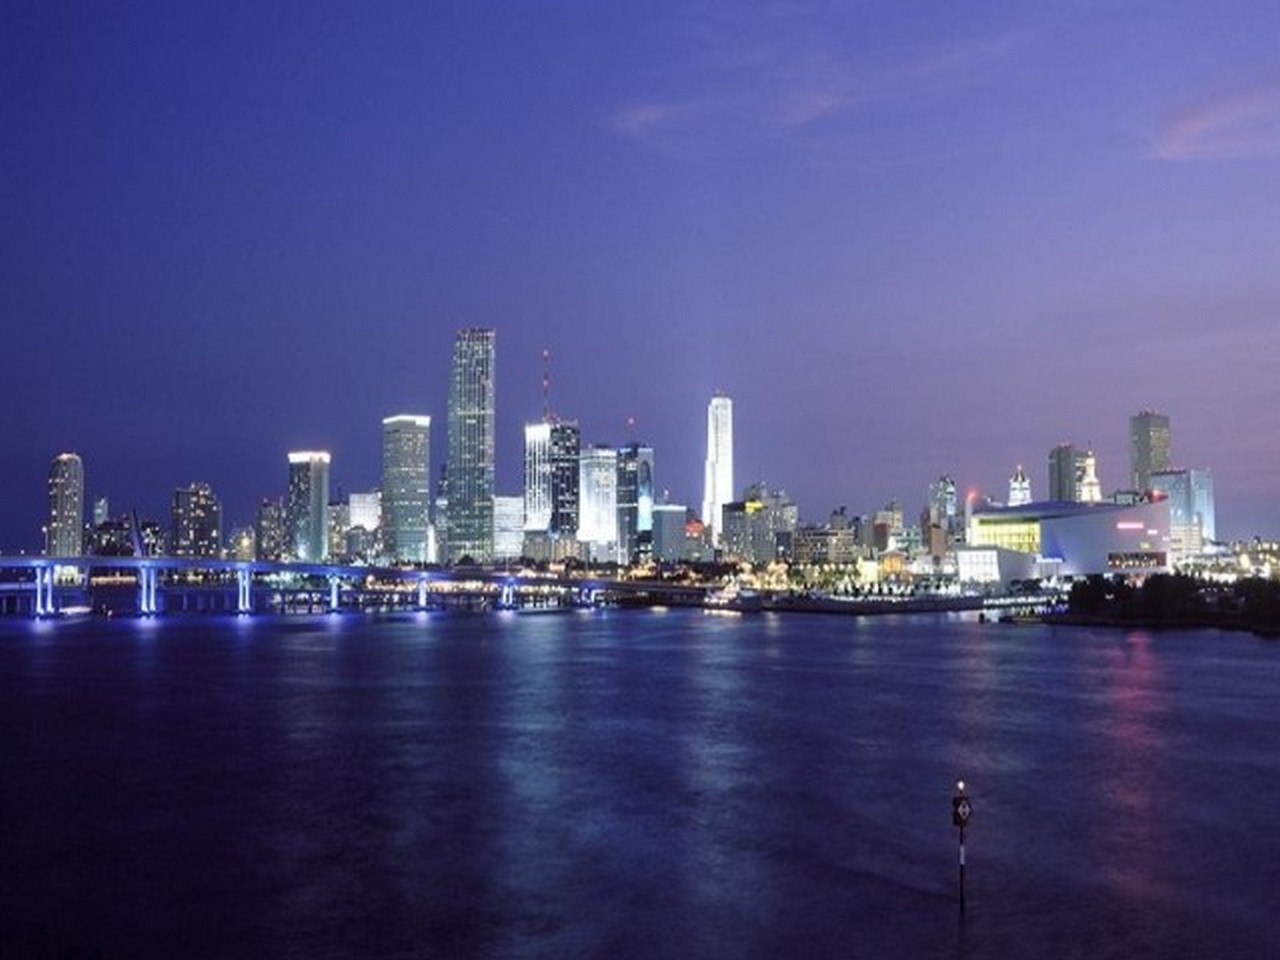 Miami HD wallpaper 1280 x 960